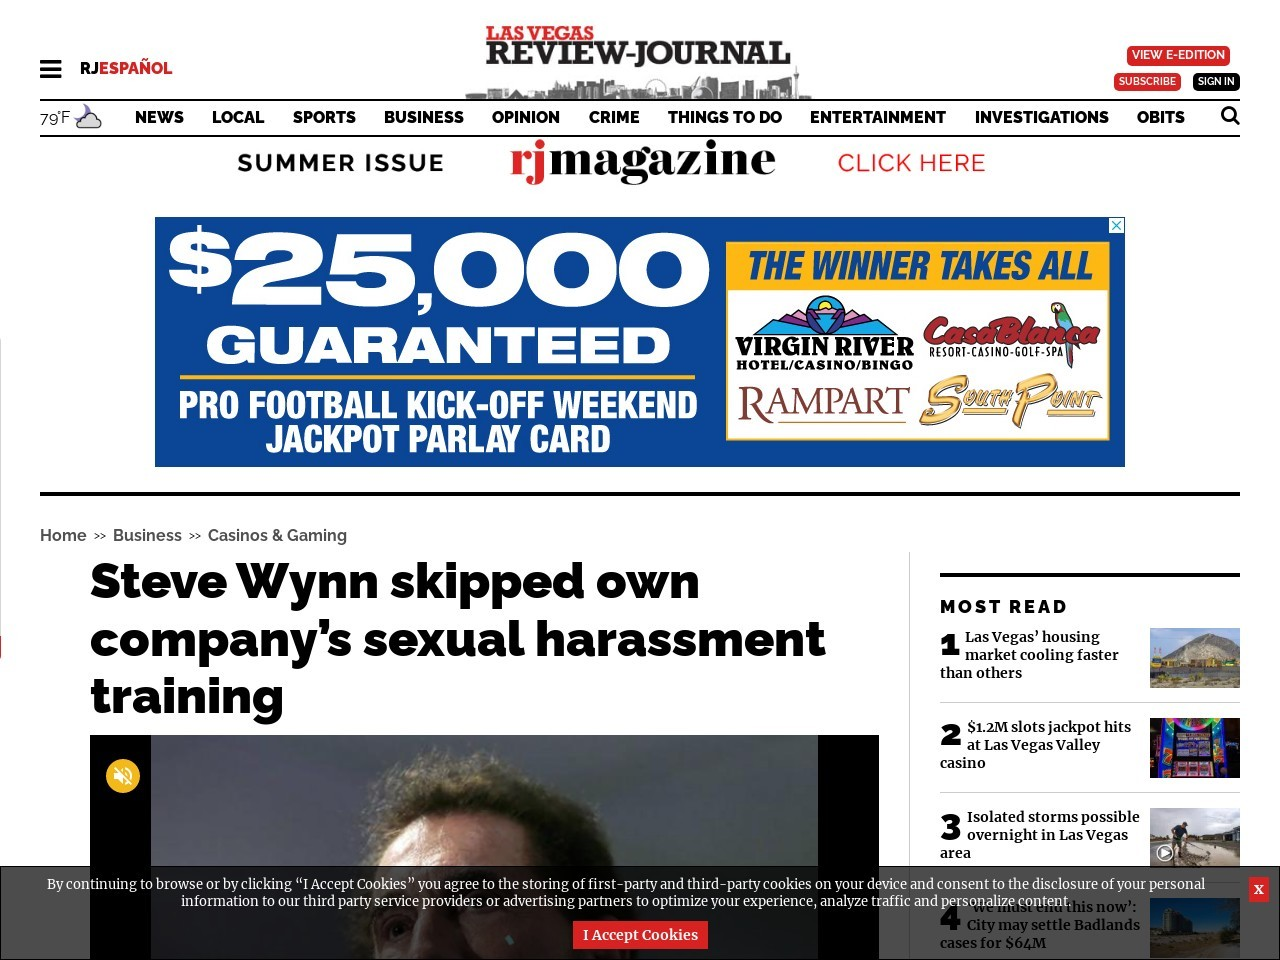 Steve Wynn skipped own company's sexual harassment training